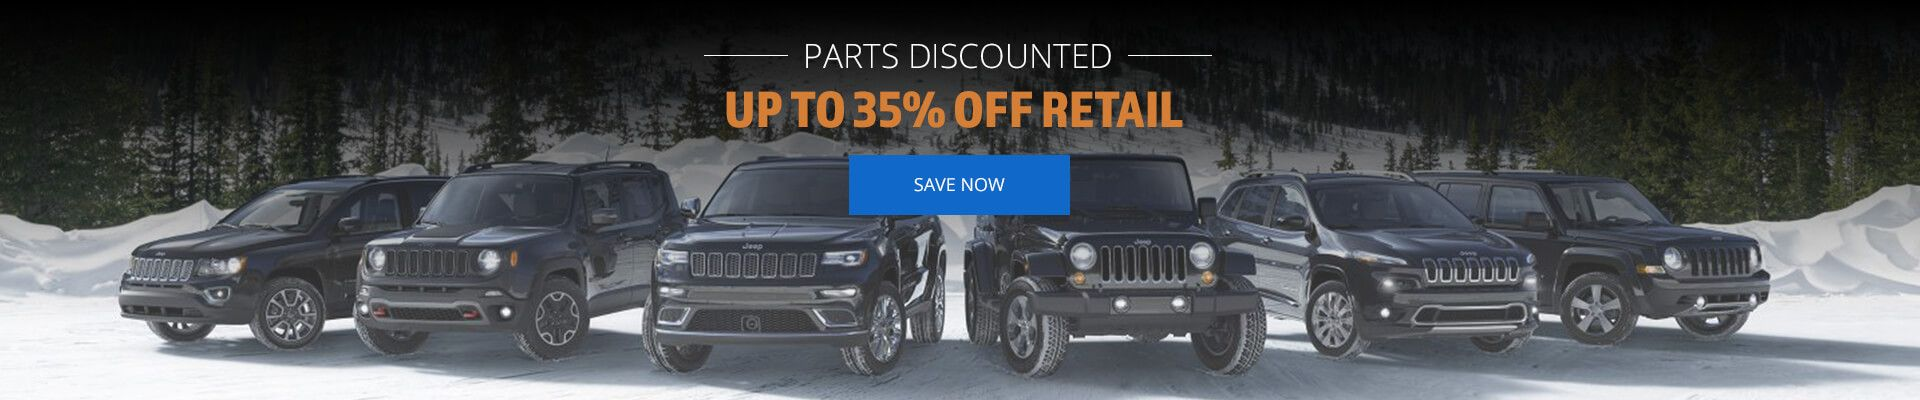 Save up to 35% Mopar Parts